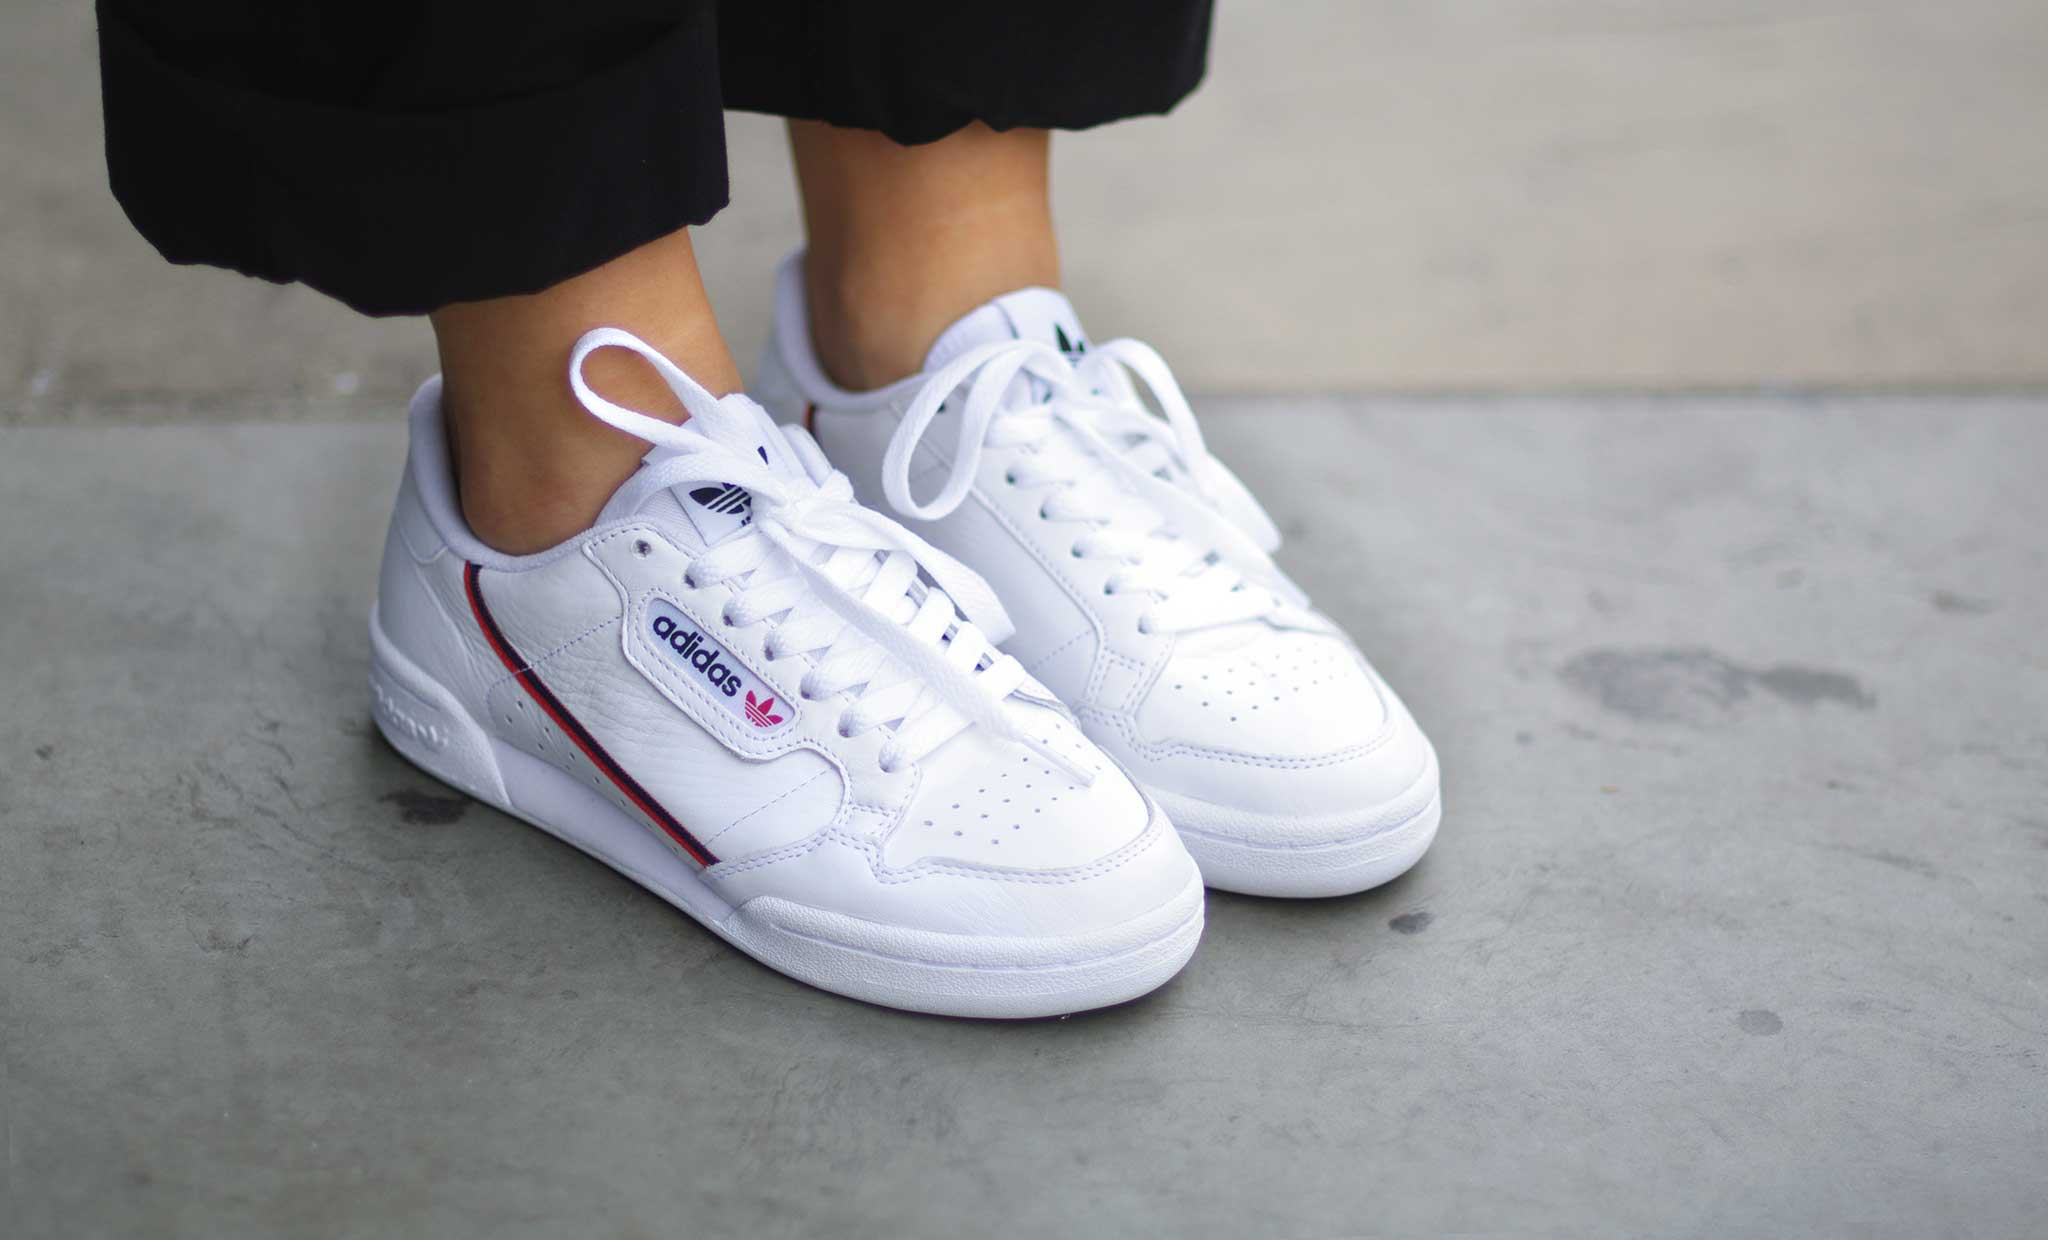 Originals BulletinAdidas Originals Continental 80Pam Releases 80Pam Releases Continental BulletinAdidas Originals Releases Continental BulletinAdidas 80wmvNn